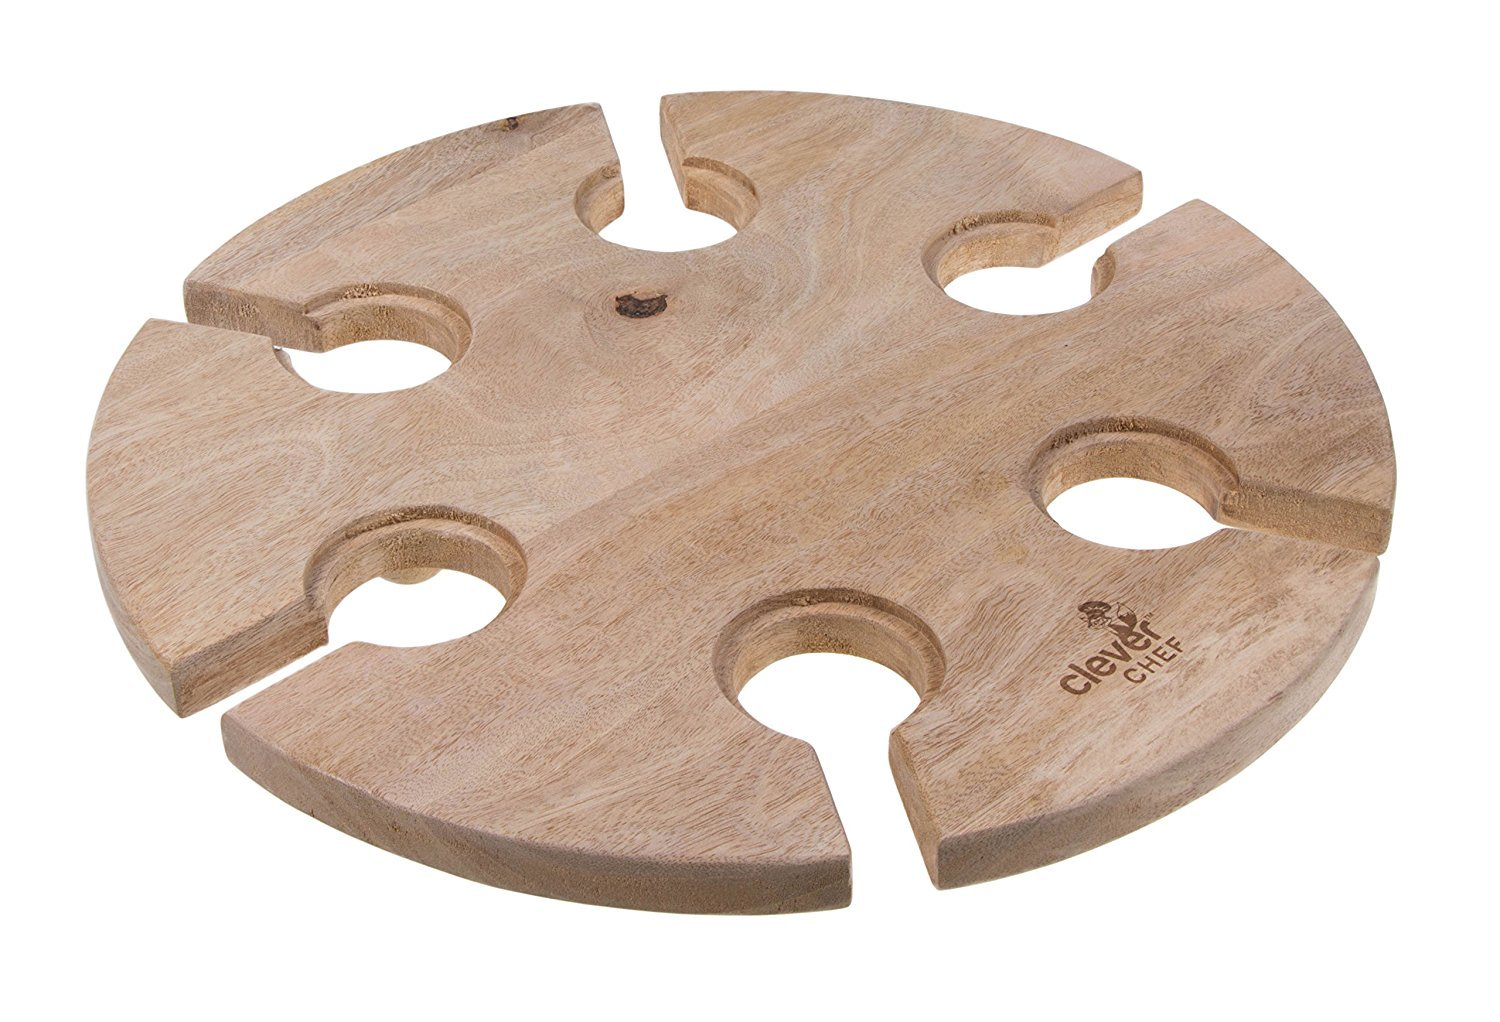 Premium Wine Glass Serving Table by Clever Chef   Made of Mango Wood   Holds 6 Wine Glasses